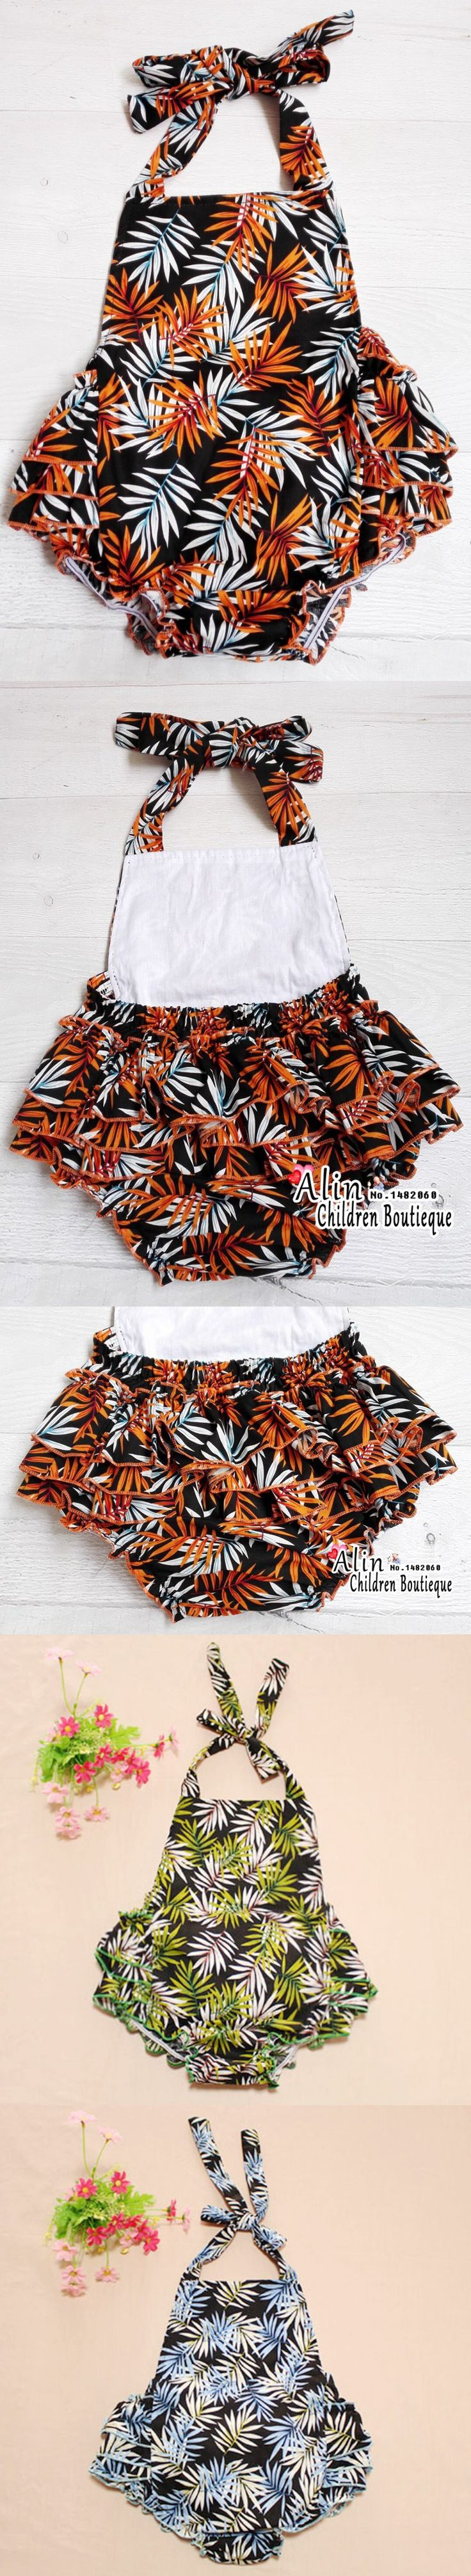 Print Baby Jumpsuit Lace Up Rompers,Ruffled Baby Rompers Infant Girl Costume,Mamelucos Para Bebes,#P0122